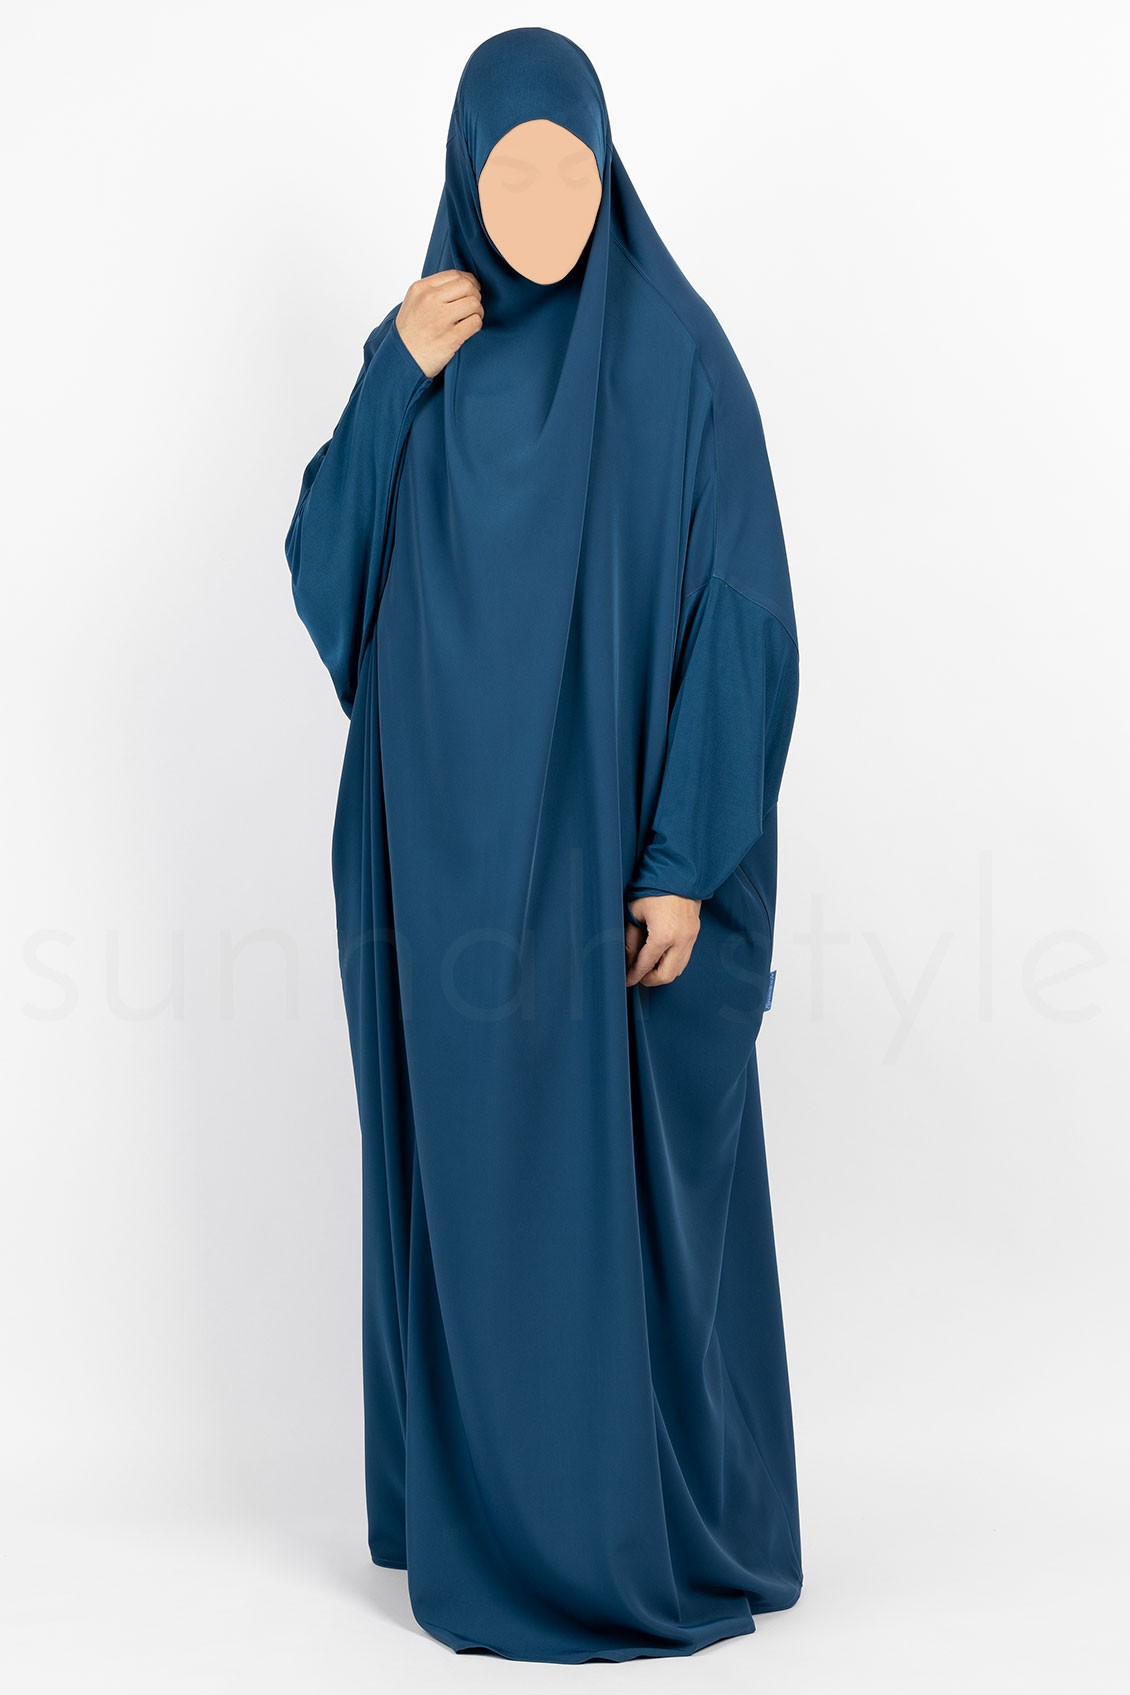 Sunnah Style Signature Full Length Jilbab Pacific Blue